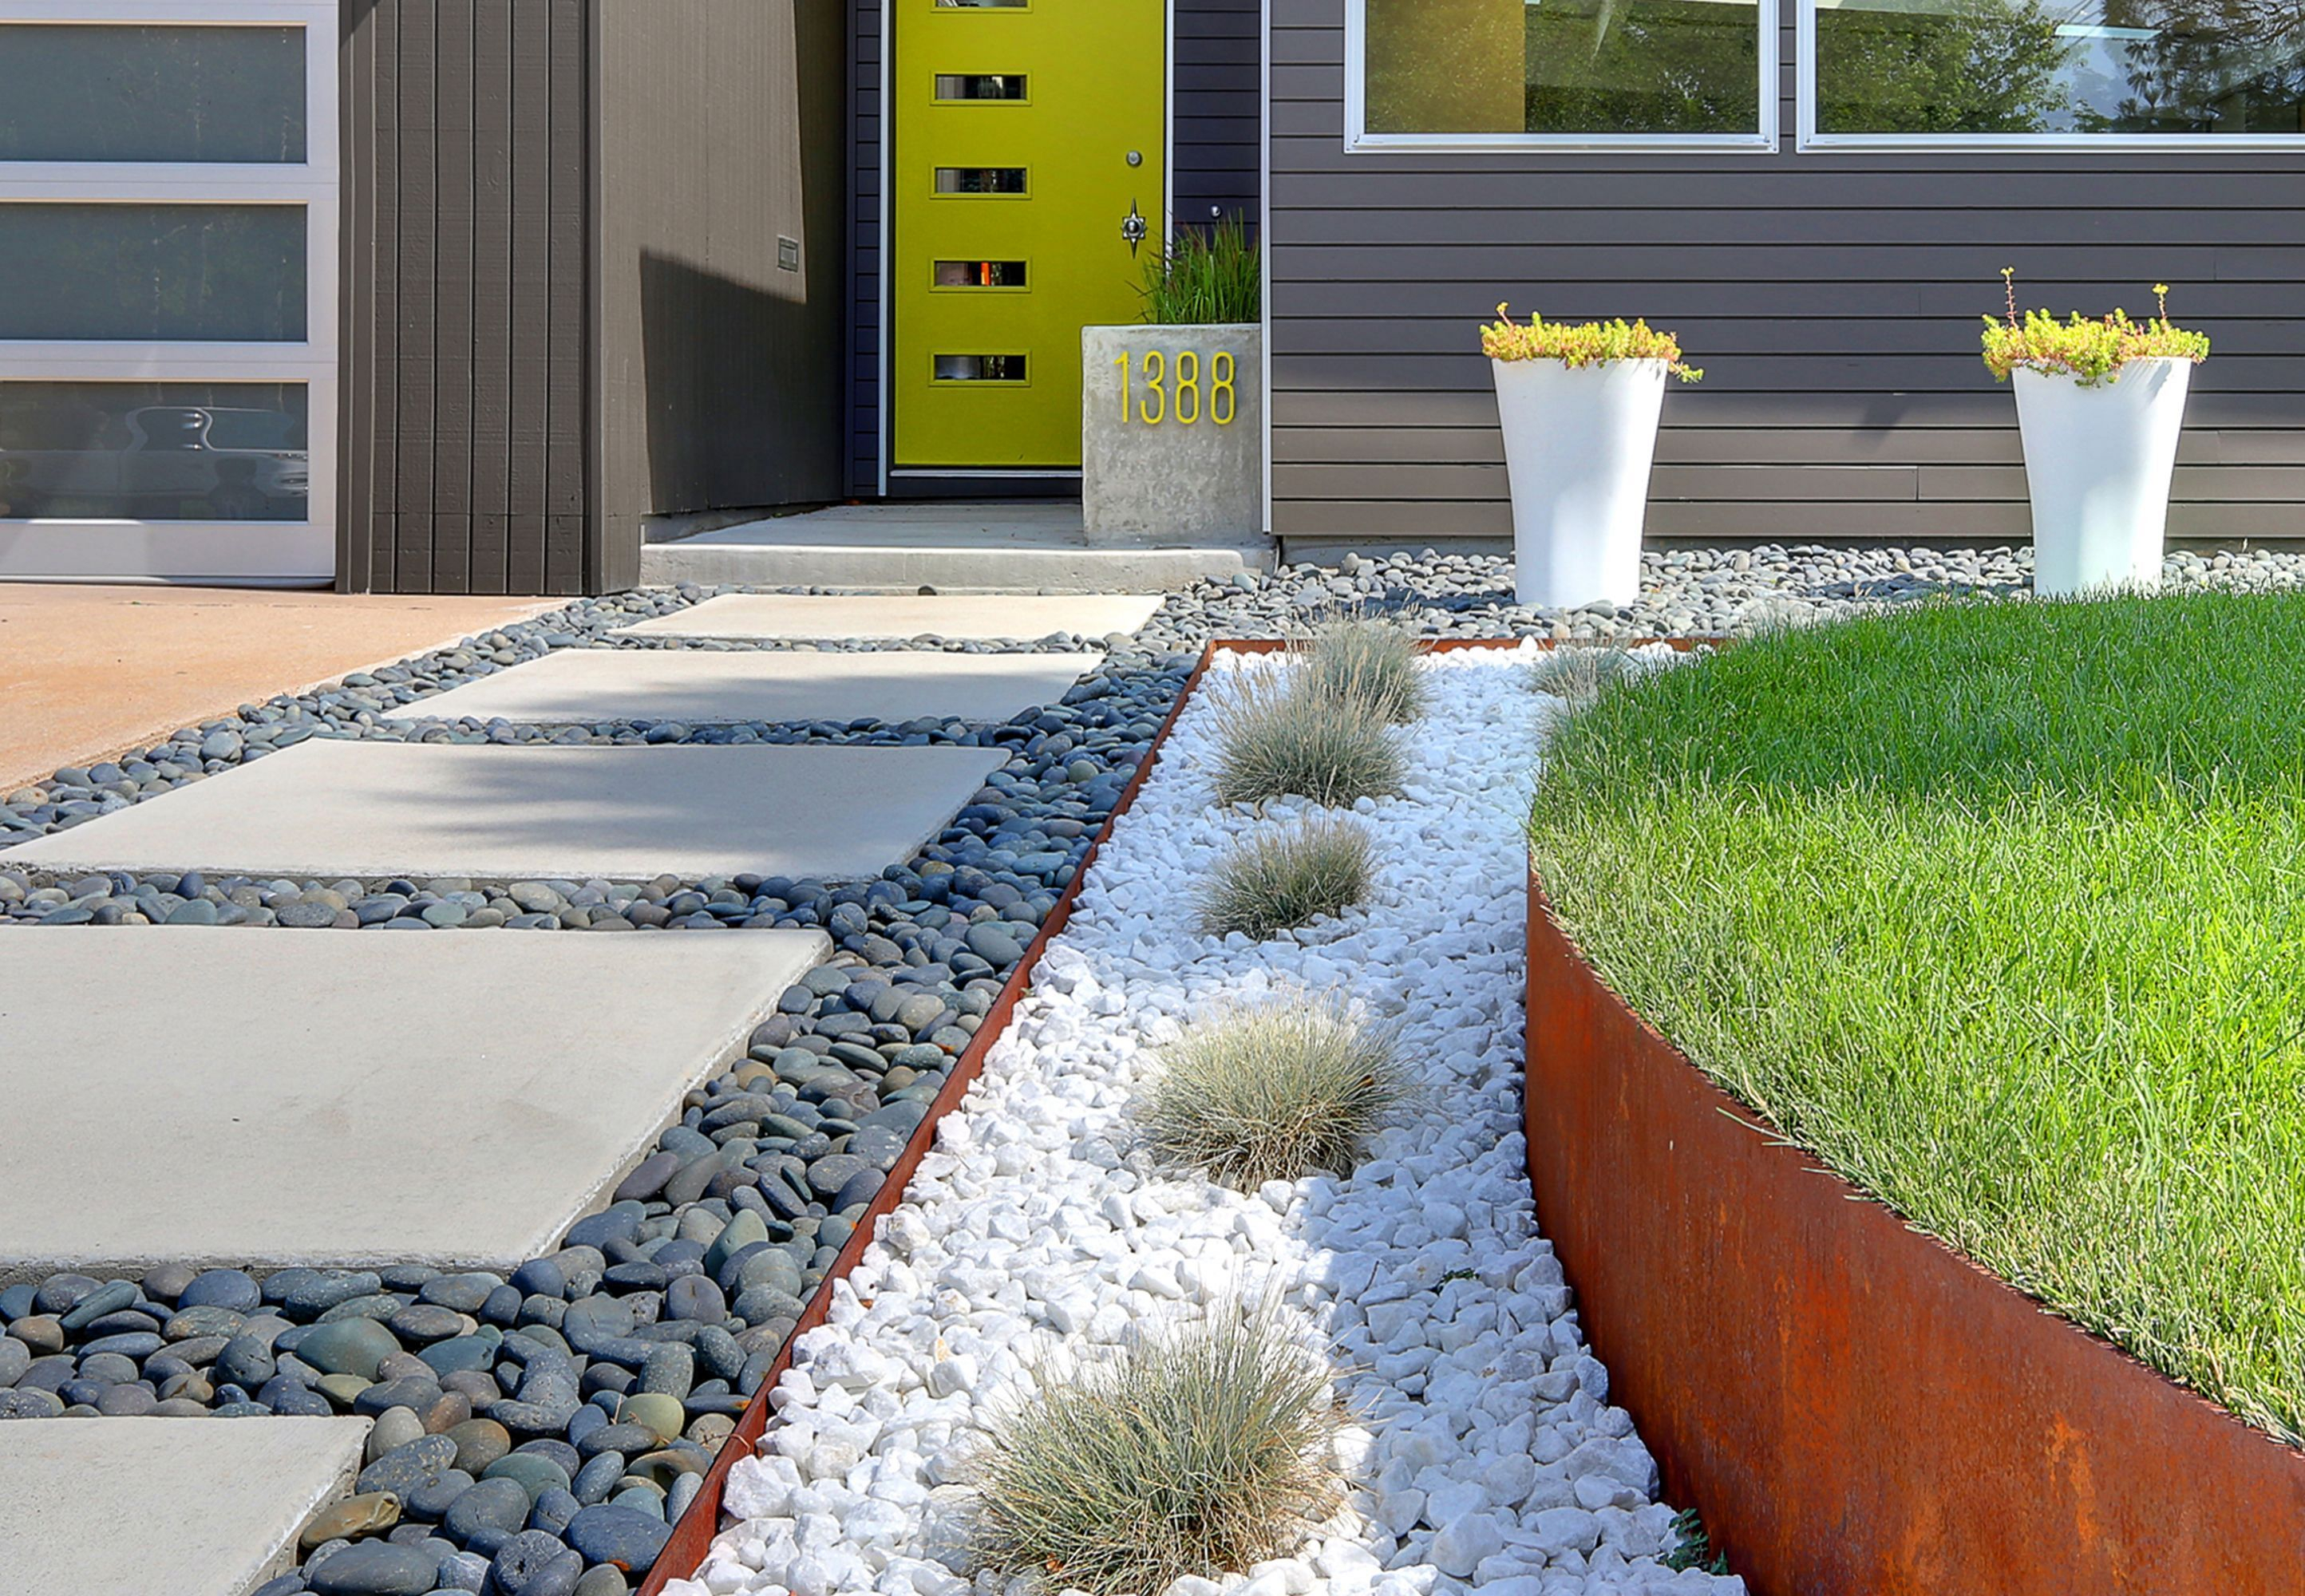 Gravel Landscaping Ideas Front Yard Decor Its within 14 Genius Ideas How to Make Gravel Backyard Ideas